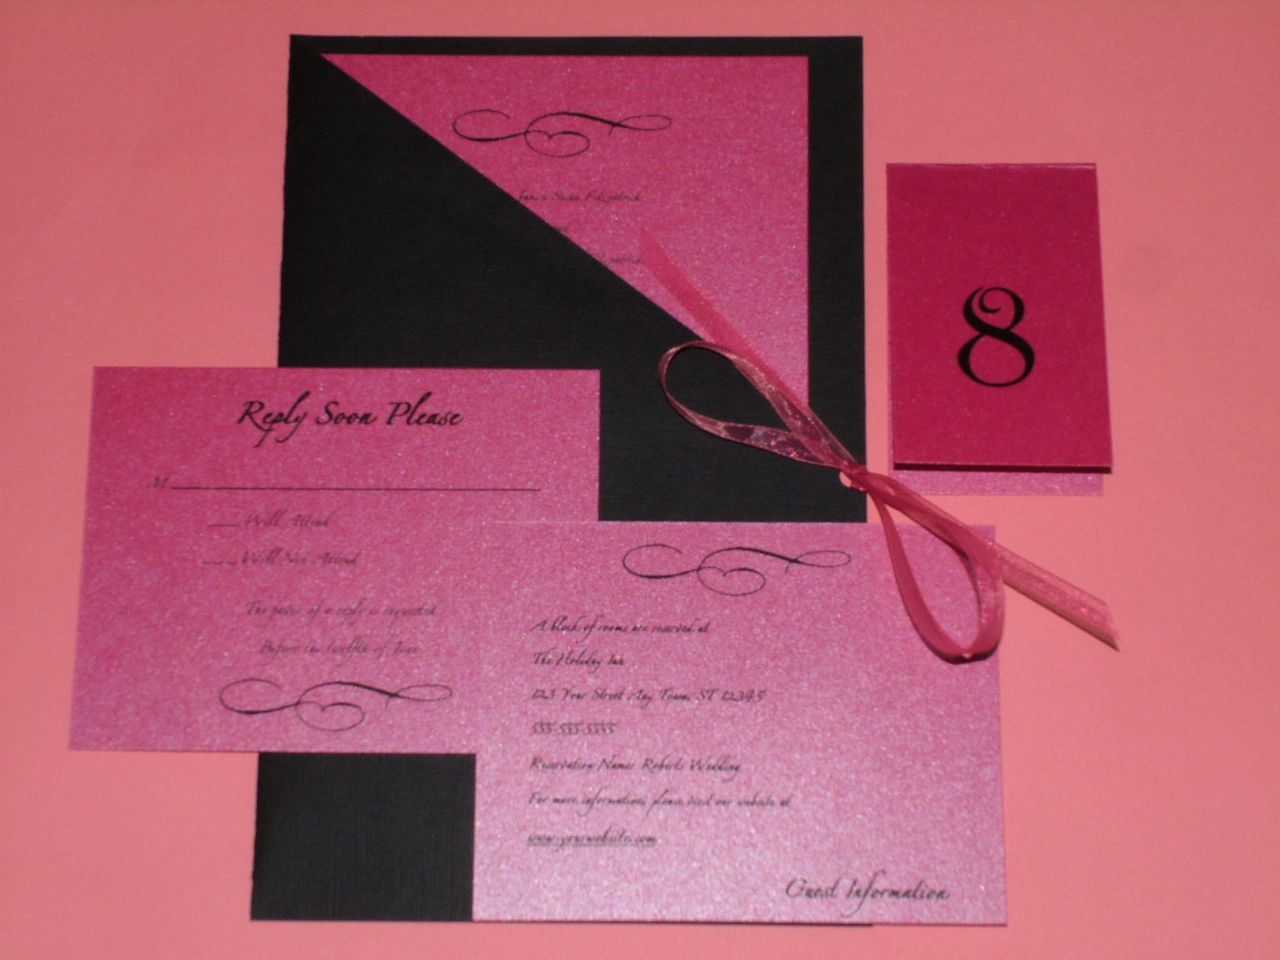 2008 wedding invitation style the classic invitations weblog for 2008 the classic invitation has redesigned the basic invitation jacket the diagonal jacket offers a modern twist on the traditional interpretation stopboris